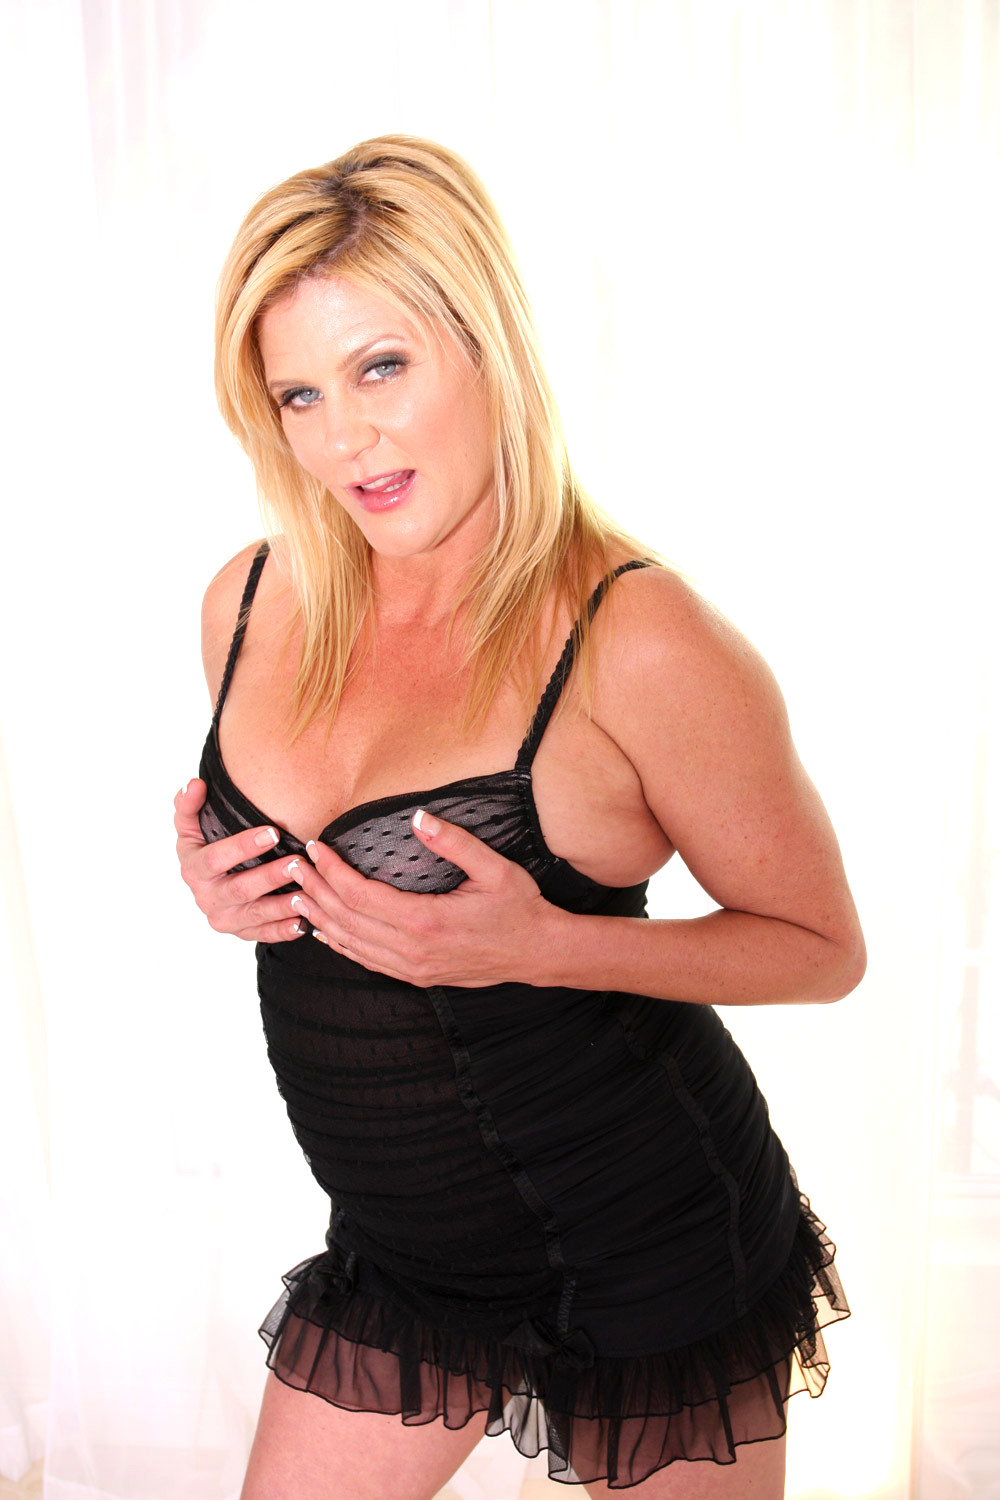 Classic busty blondes porn pics & move